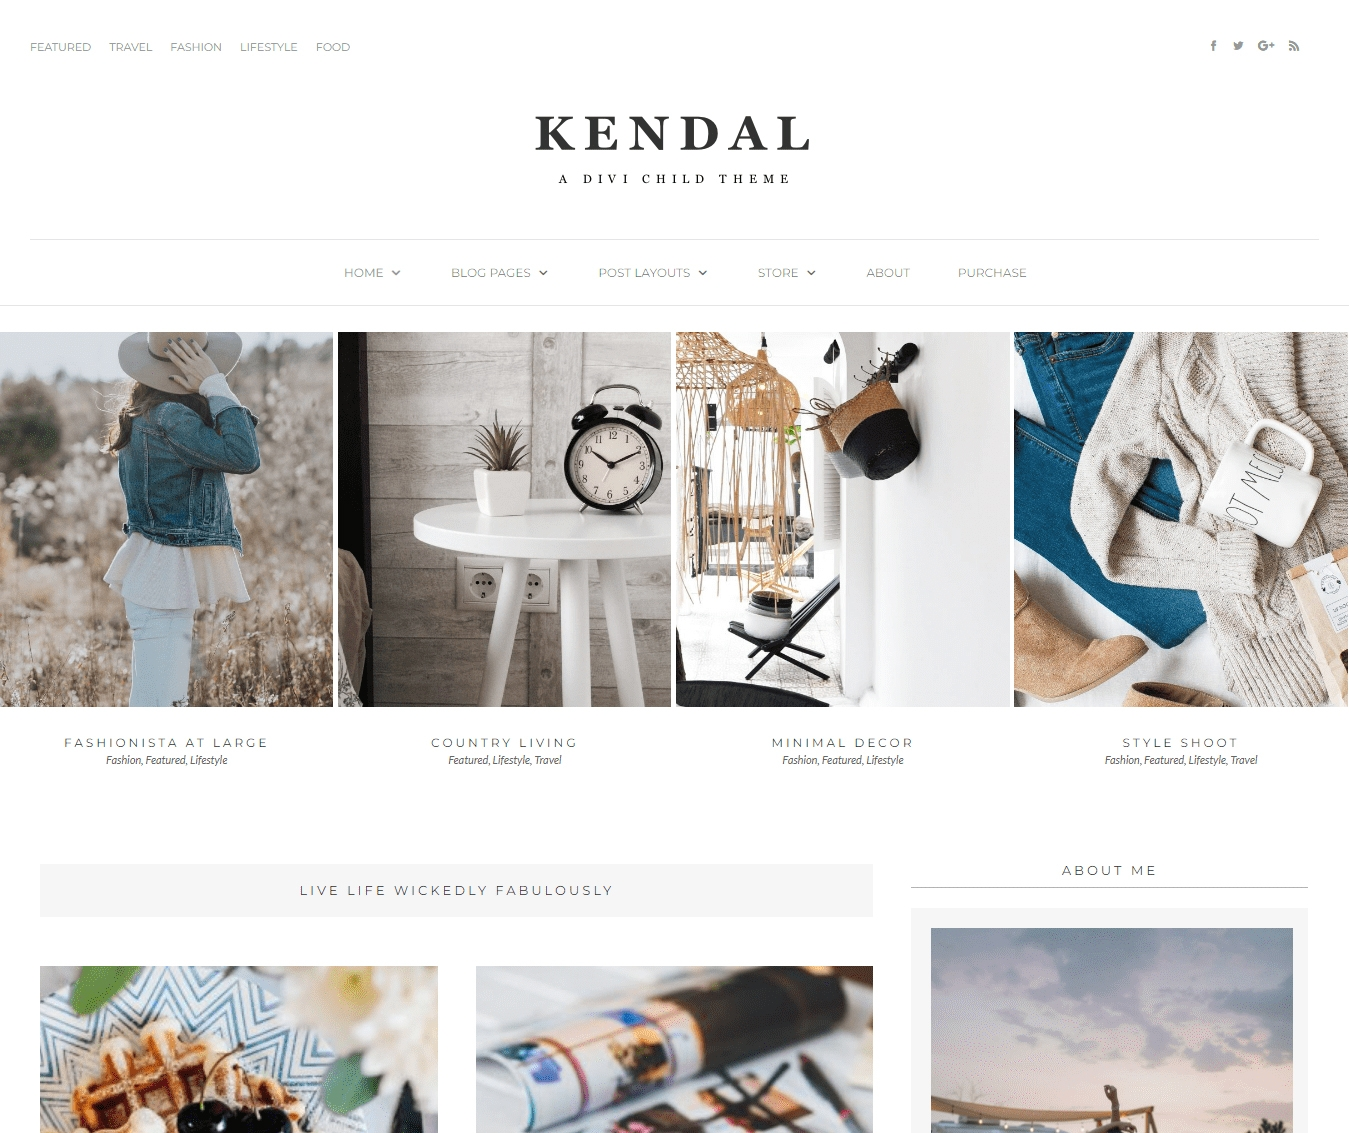 Kendal is a minimal, masonry Divi blog child theme for the lifestyle, travel and fashion blogger